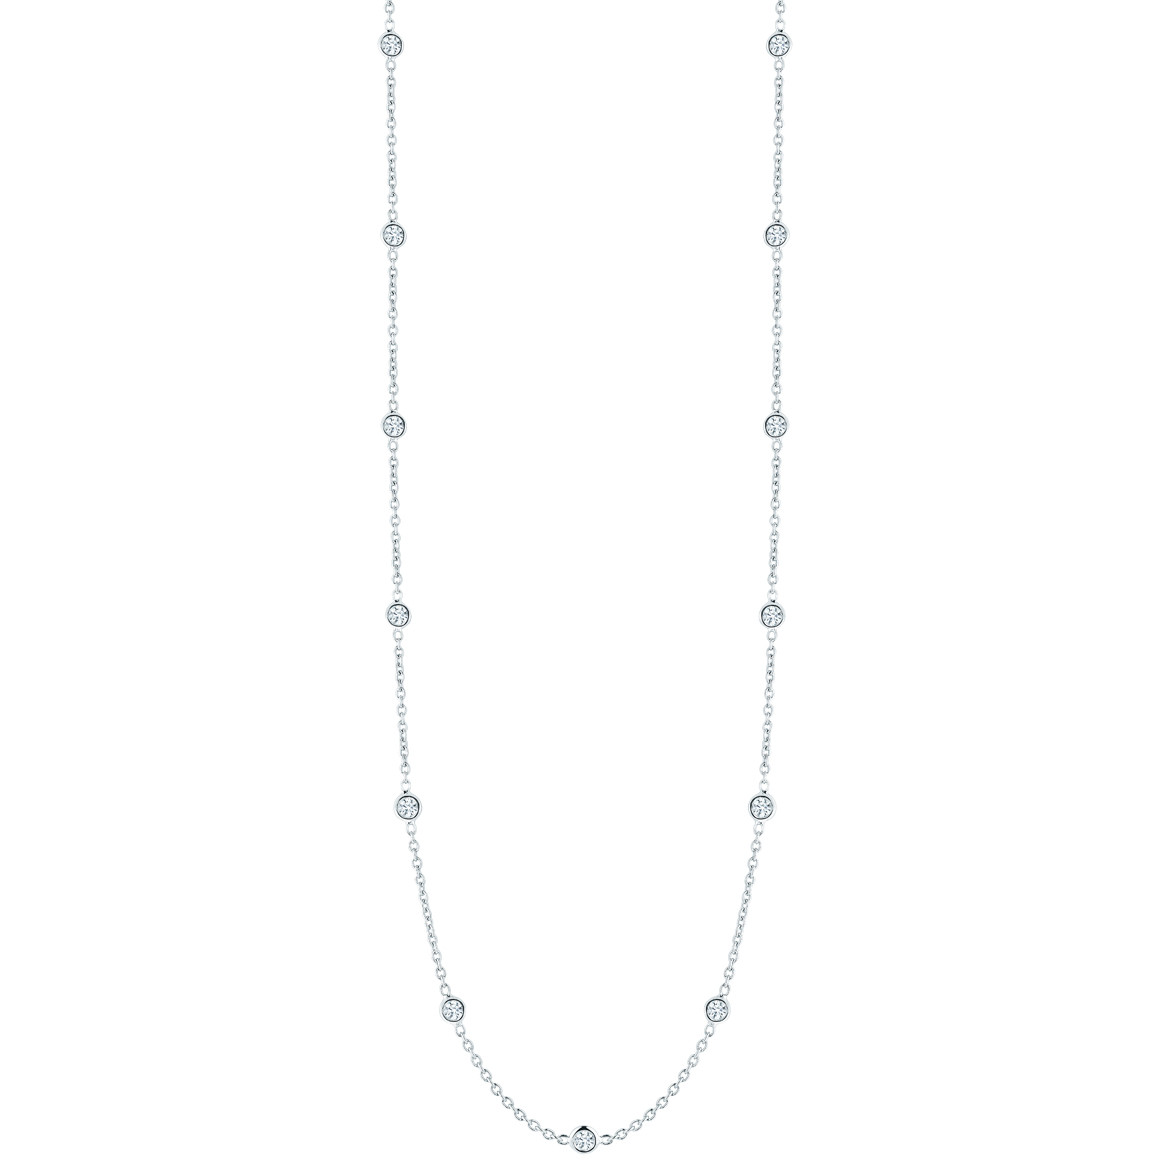 18k White Gold & Fifteen Diamond Station Necklace